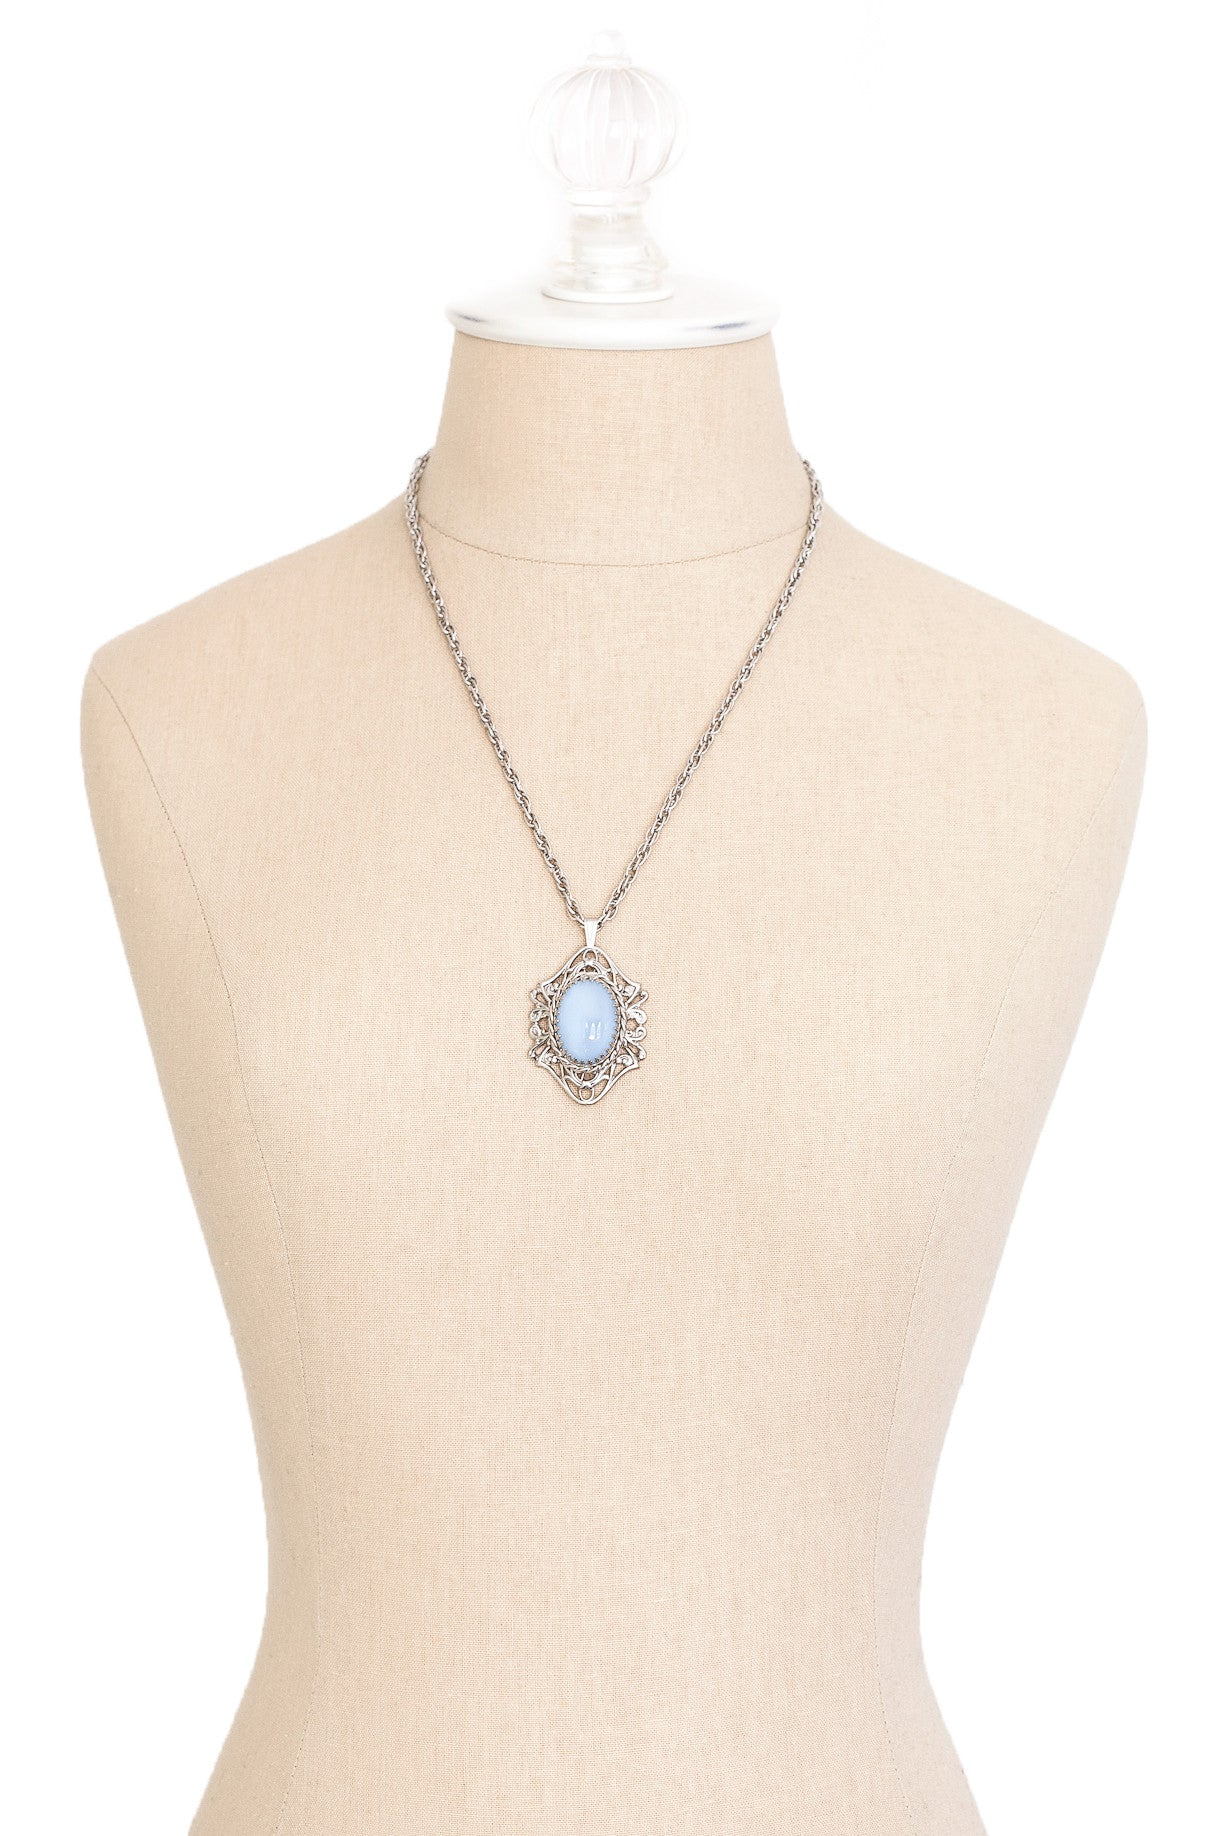 50's__Vintage__Blue Stone Pendant Necklace